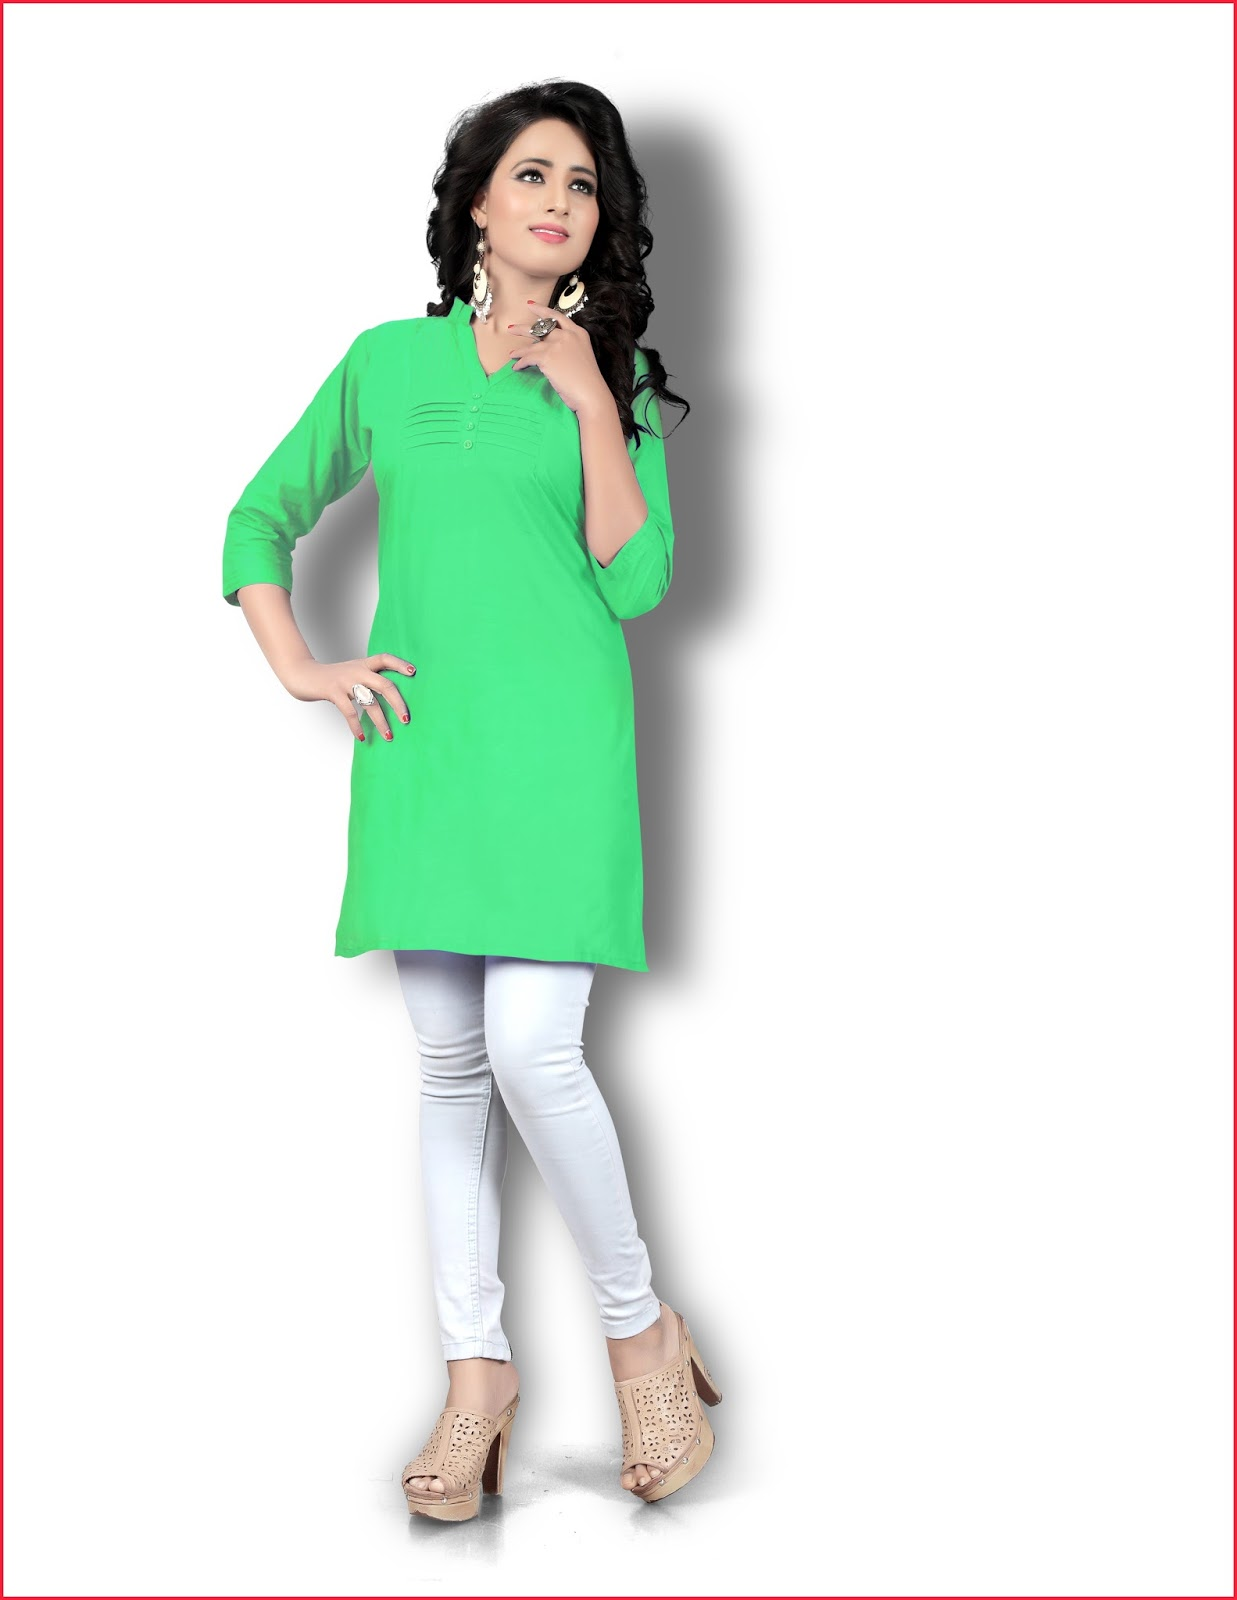 3984eda4c4 Formal Kurti - Plain Stylish Cambric Cotton Kurti - Helix Enterprise